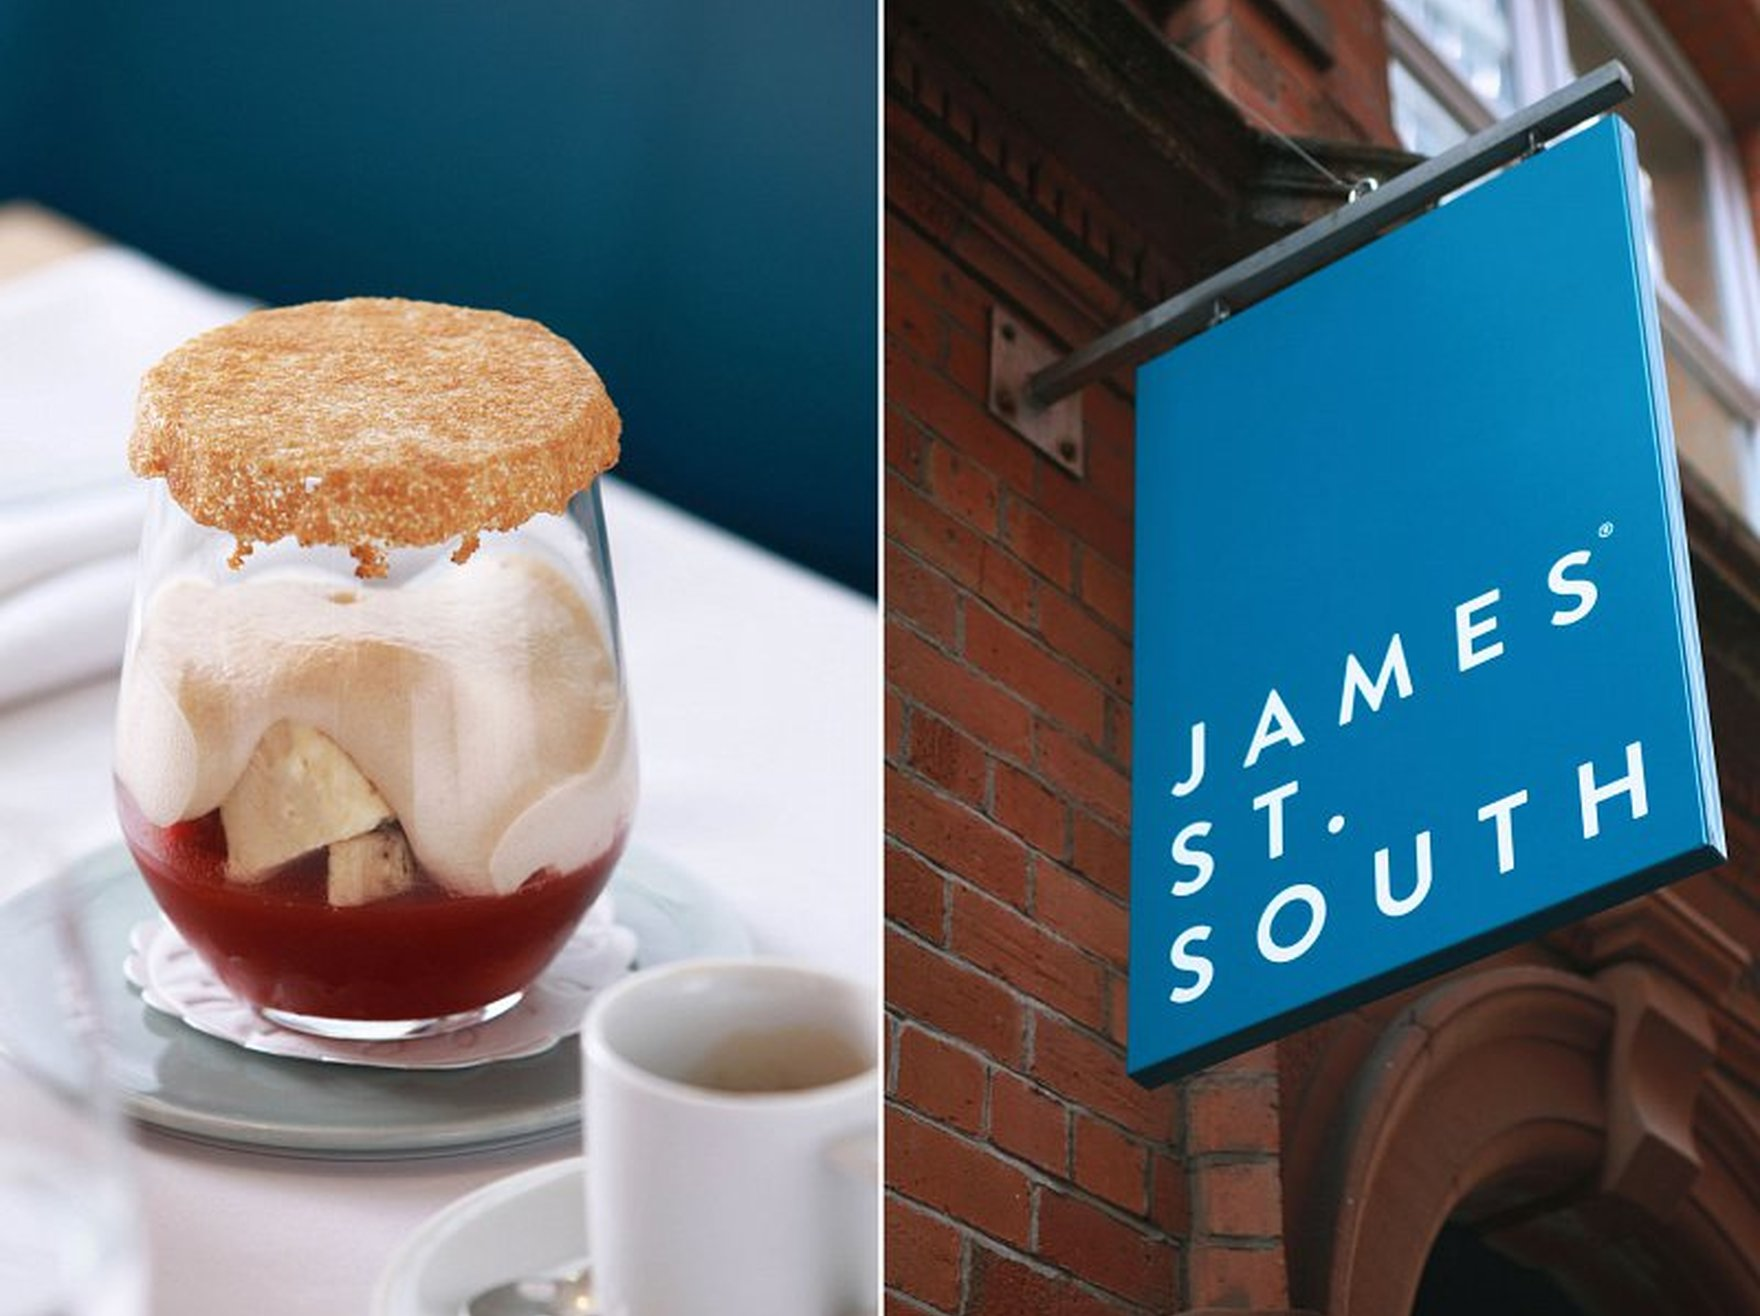 James St. South wins prestitigous Good Food Guide award for Northern Ireland